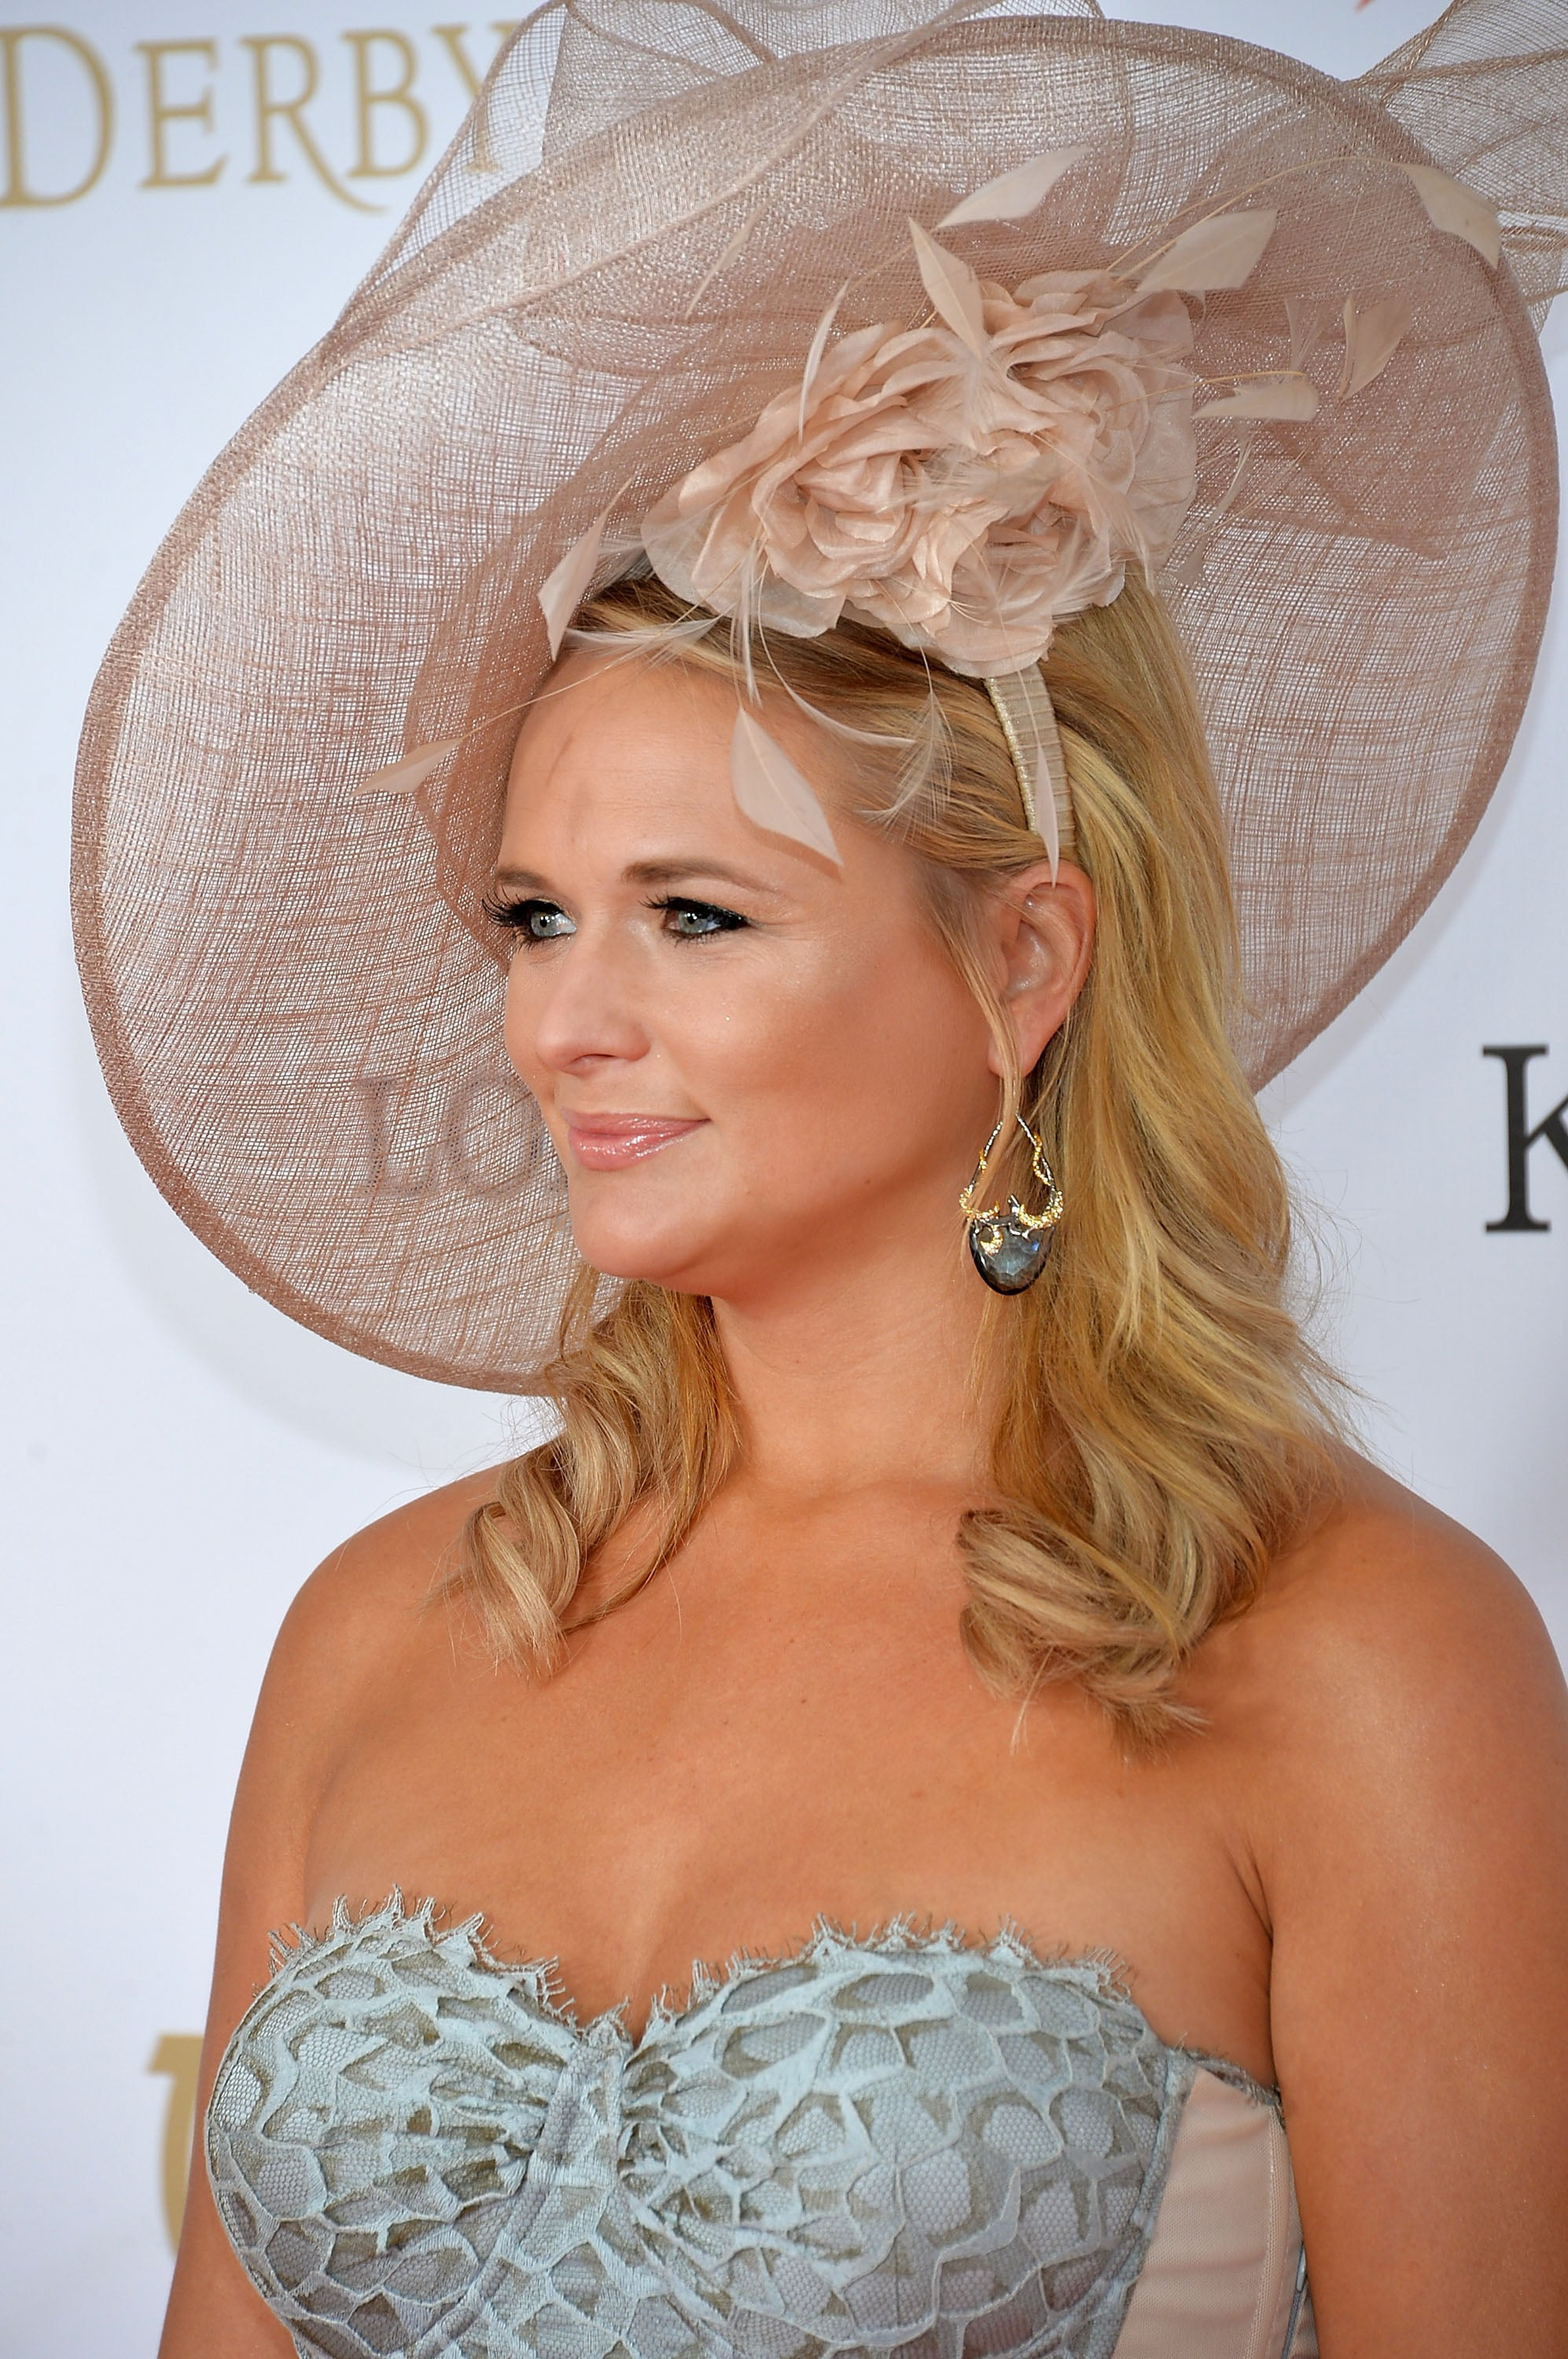 Miranda Lambert went with a pretty and subtle style in 2013.